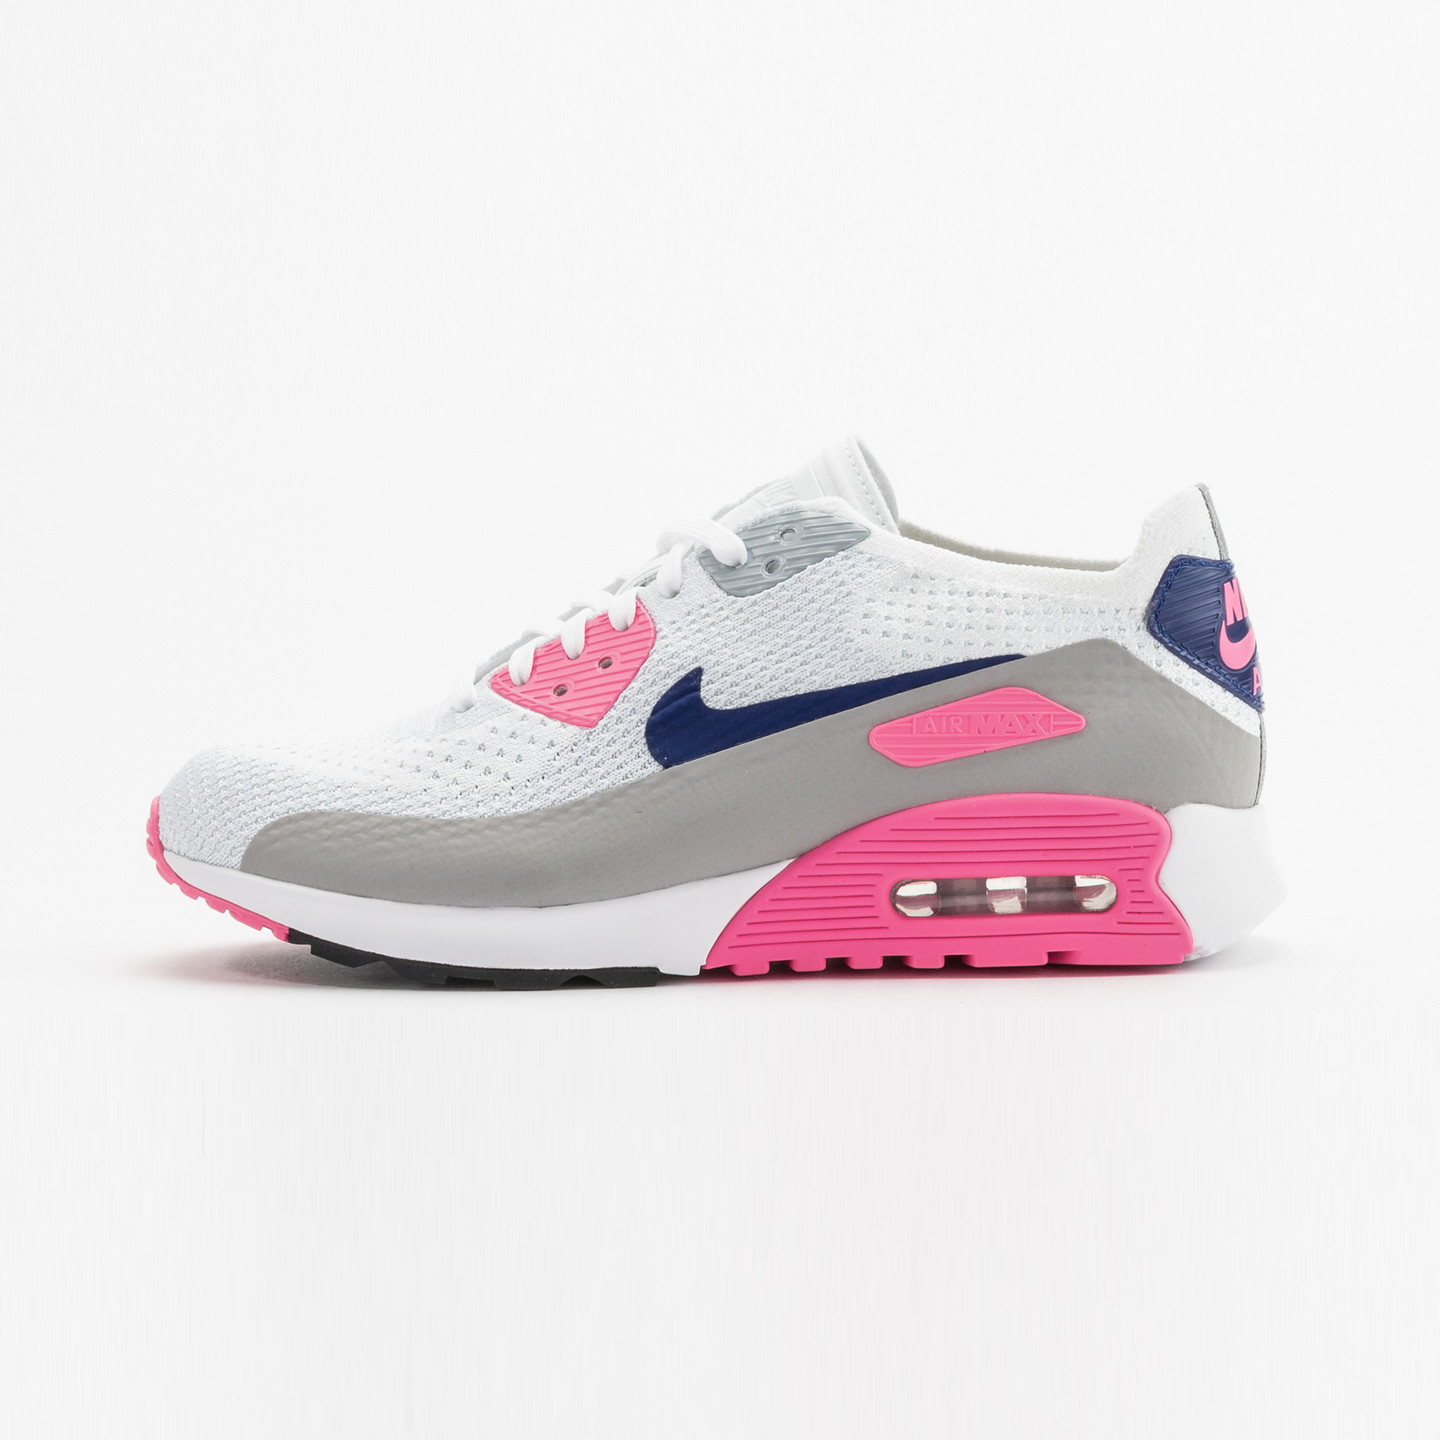 Nike Wmns Air Max 90 Ultra 2.0 Flyknit OG White / Concord / Laser Pink 881109-101